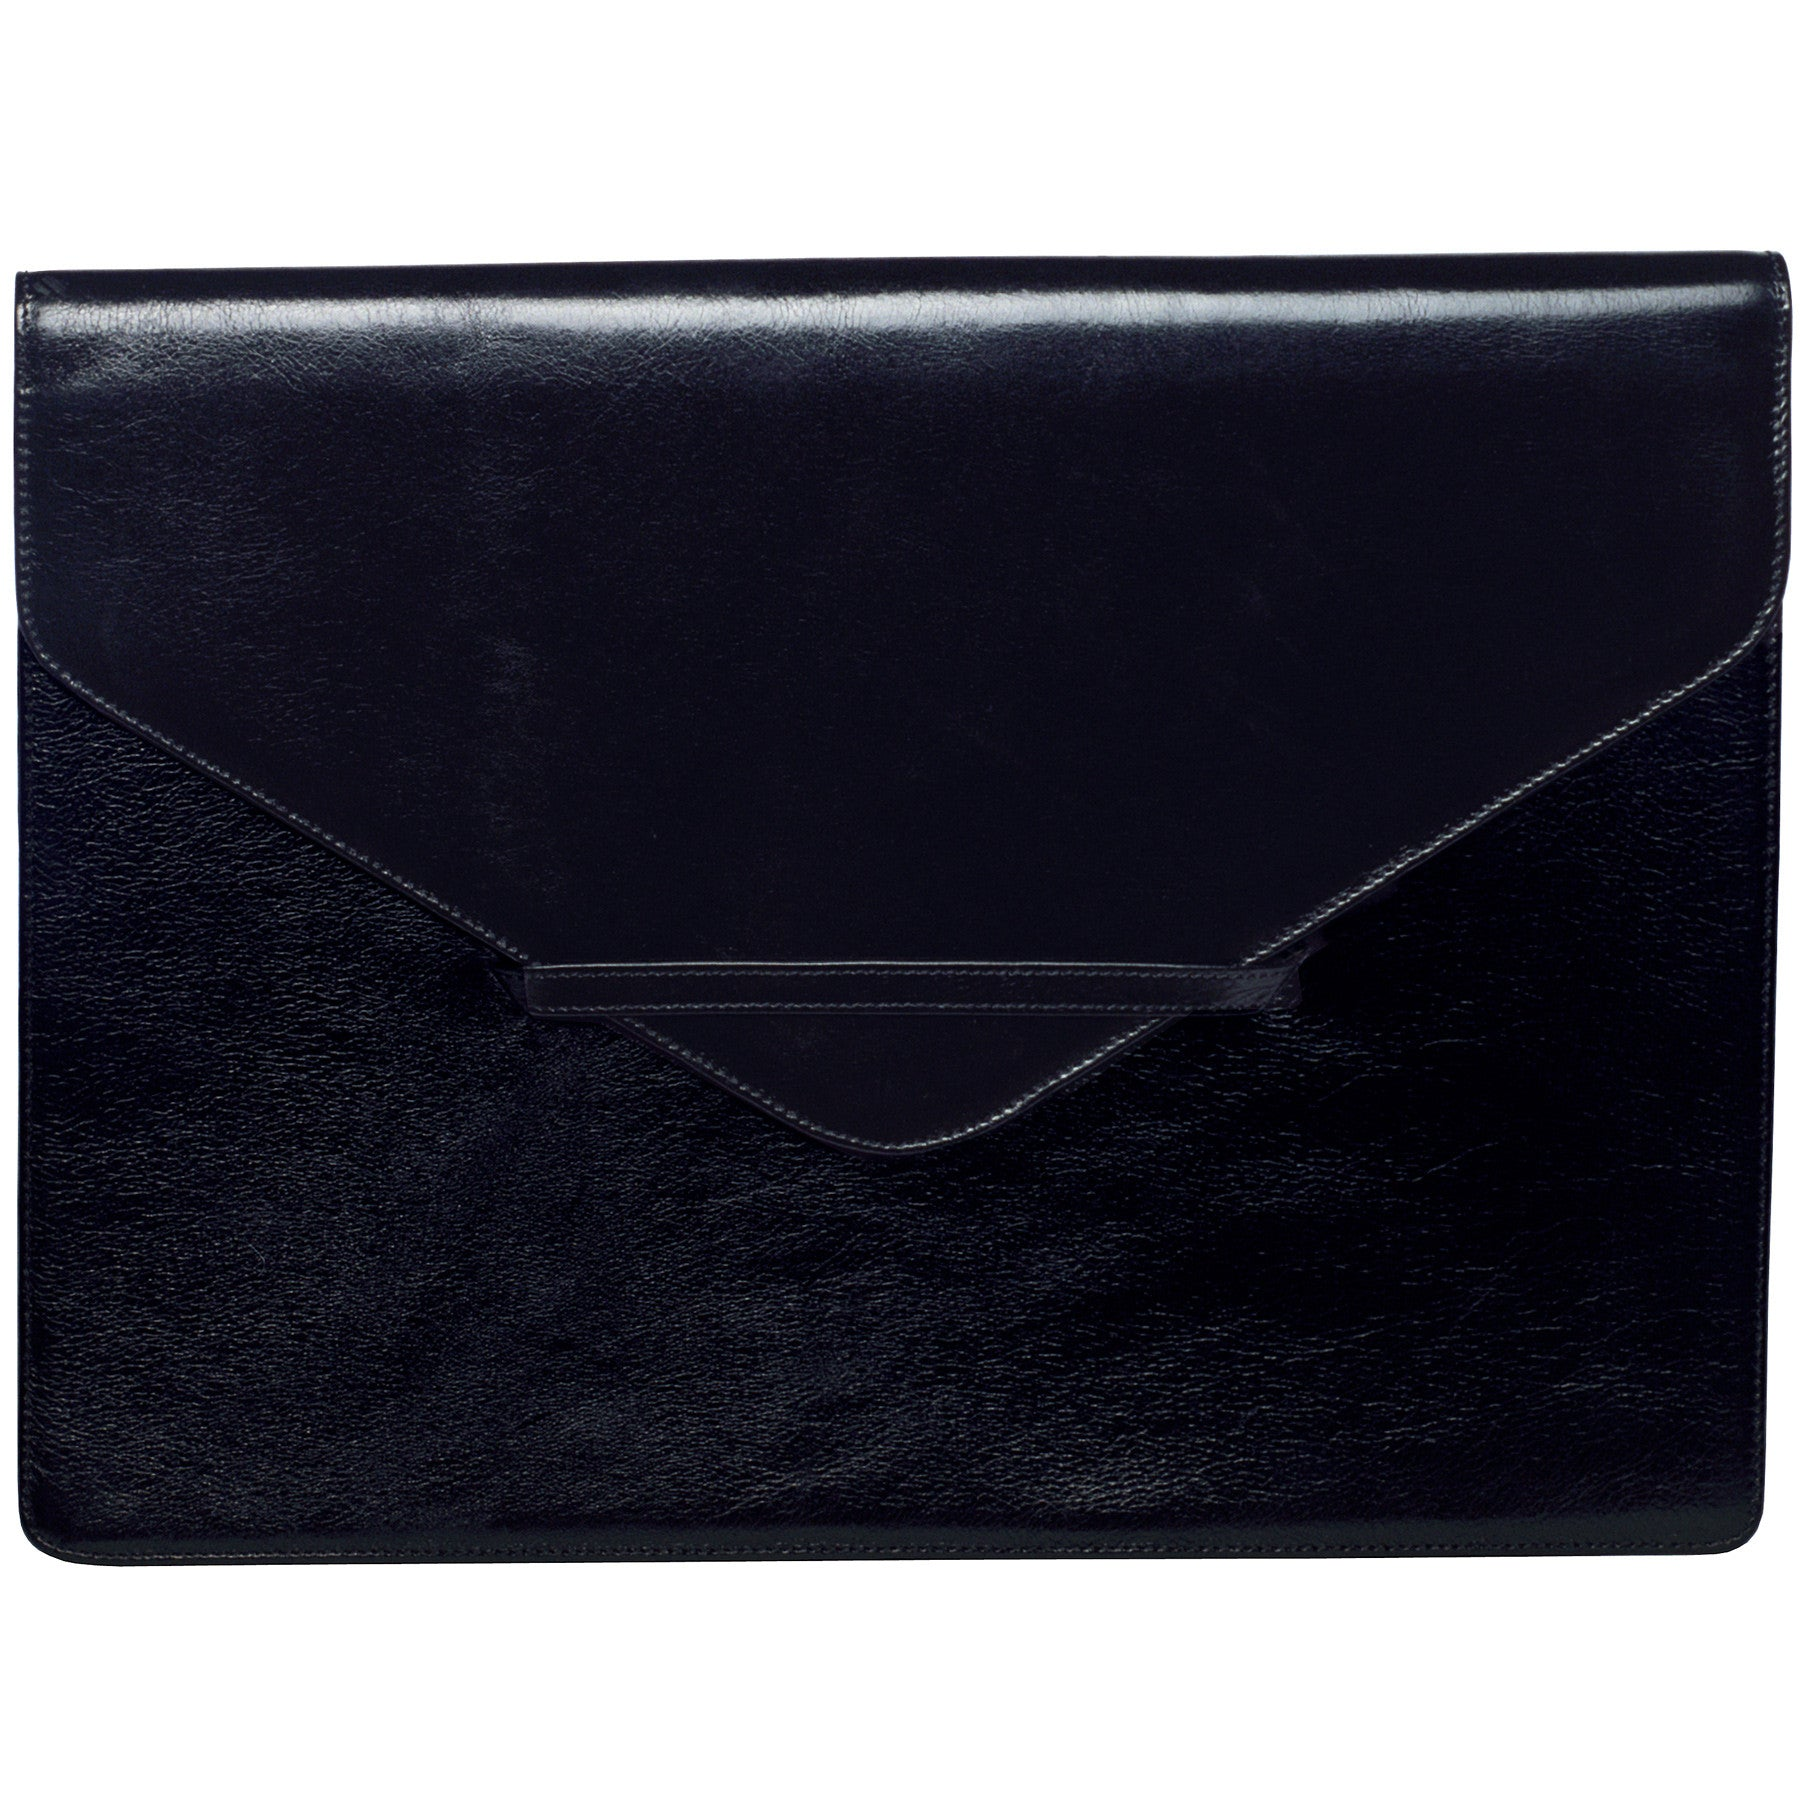 Alicia Klein large leather envelope, black